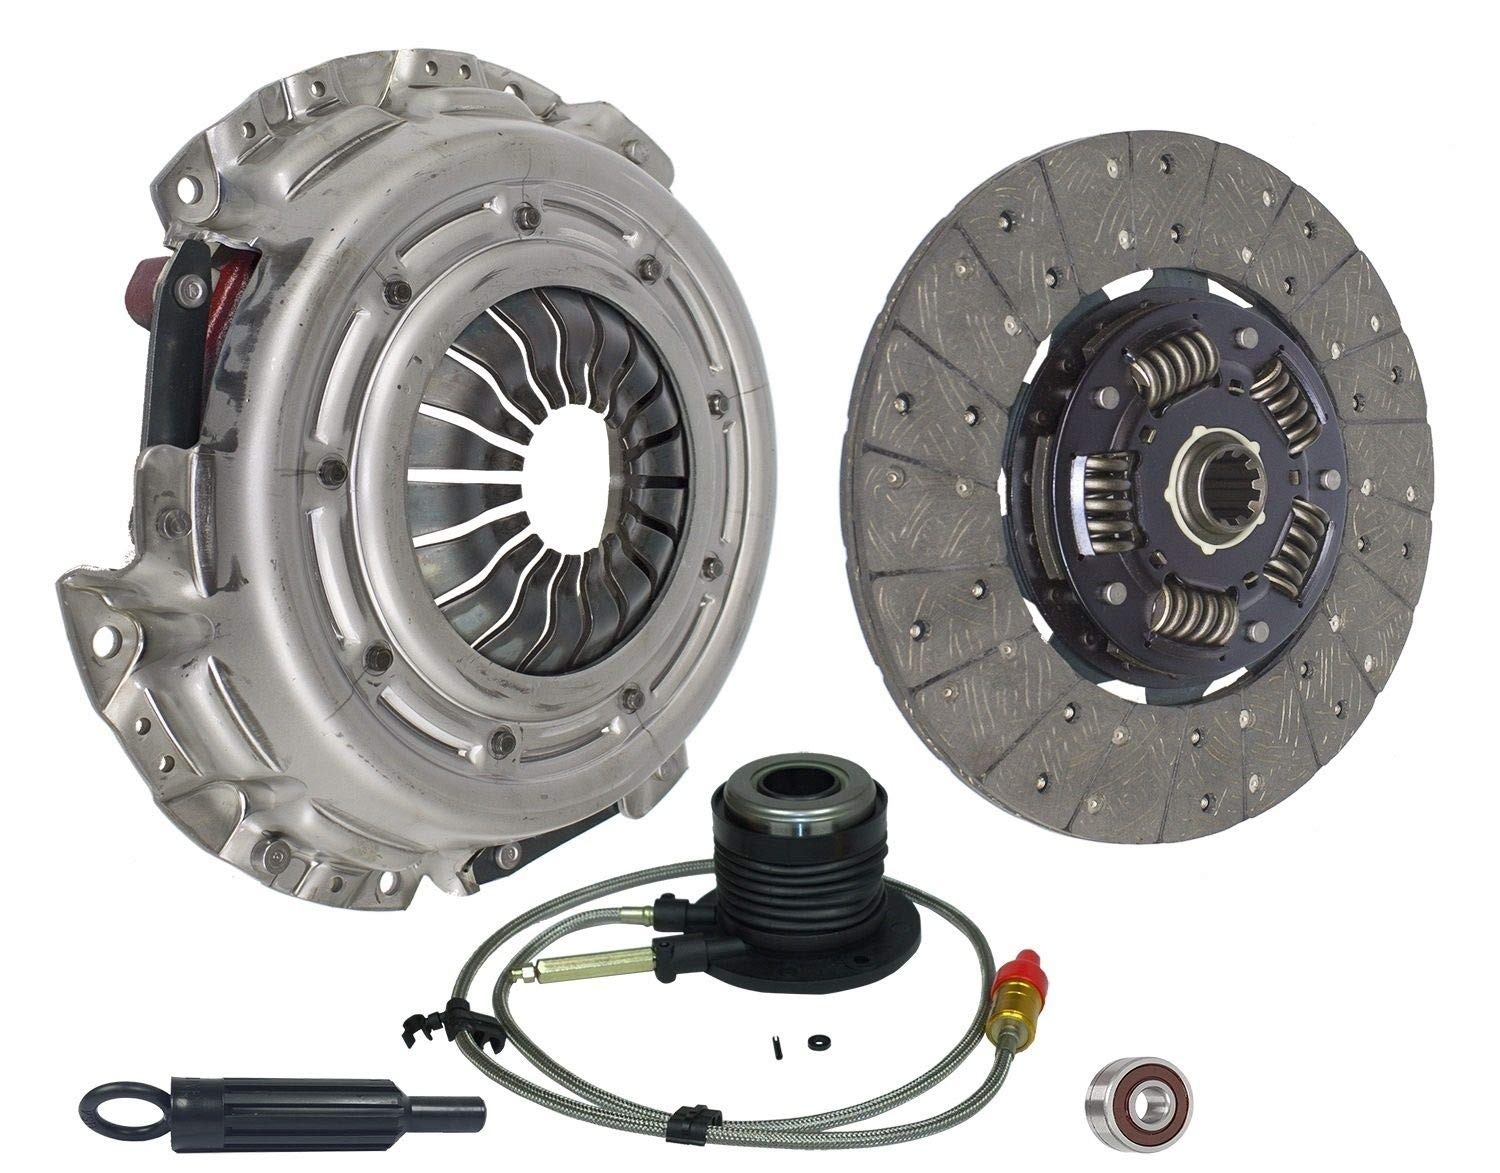 Clutch With Slave Kit Works With Chevy Astro Express Silverado Gmc Sierra WT SL LS LT SLE SLT HT Base Custom Z71 2001-2007 4.3L 262Cu. In. V6 GAS OHV Naturally Aspirated